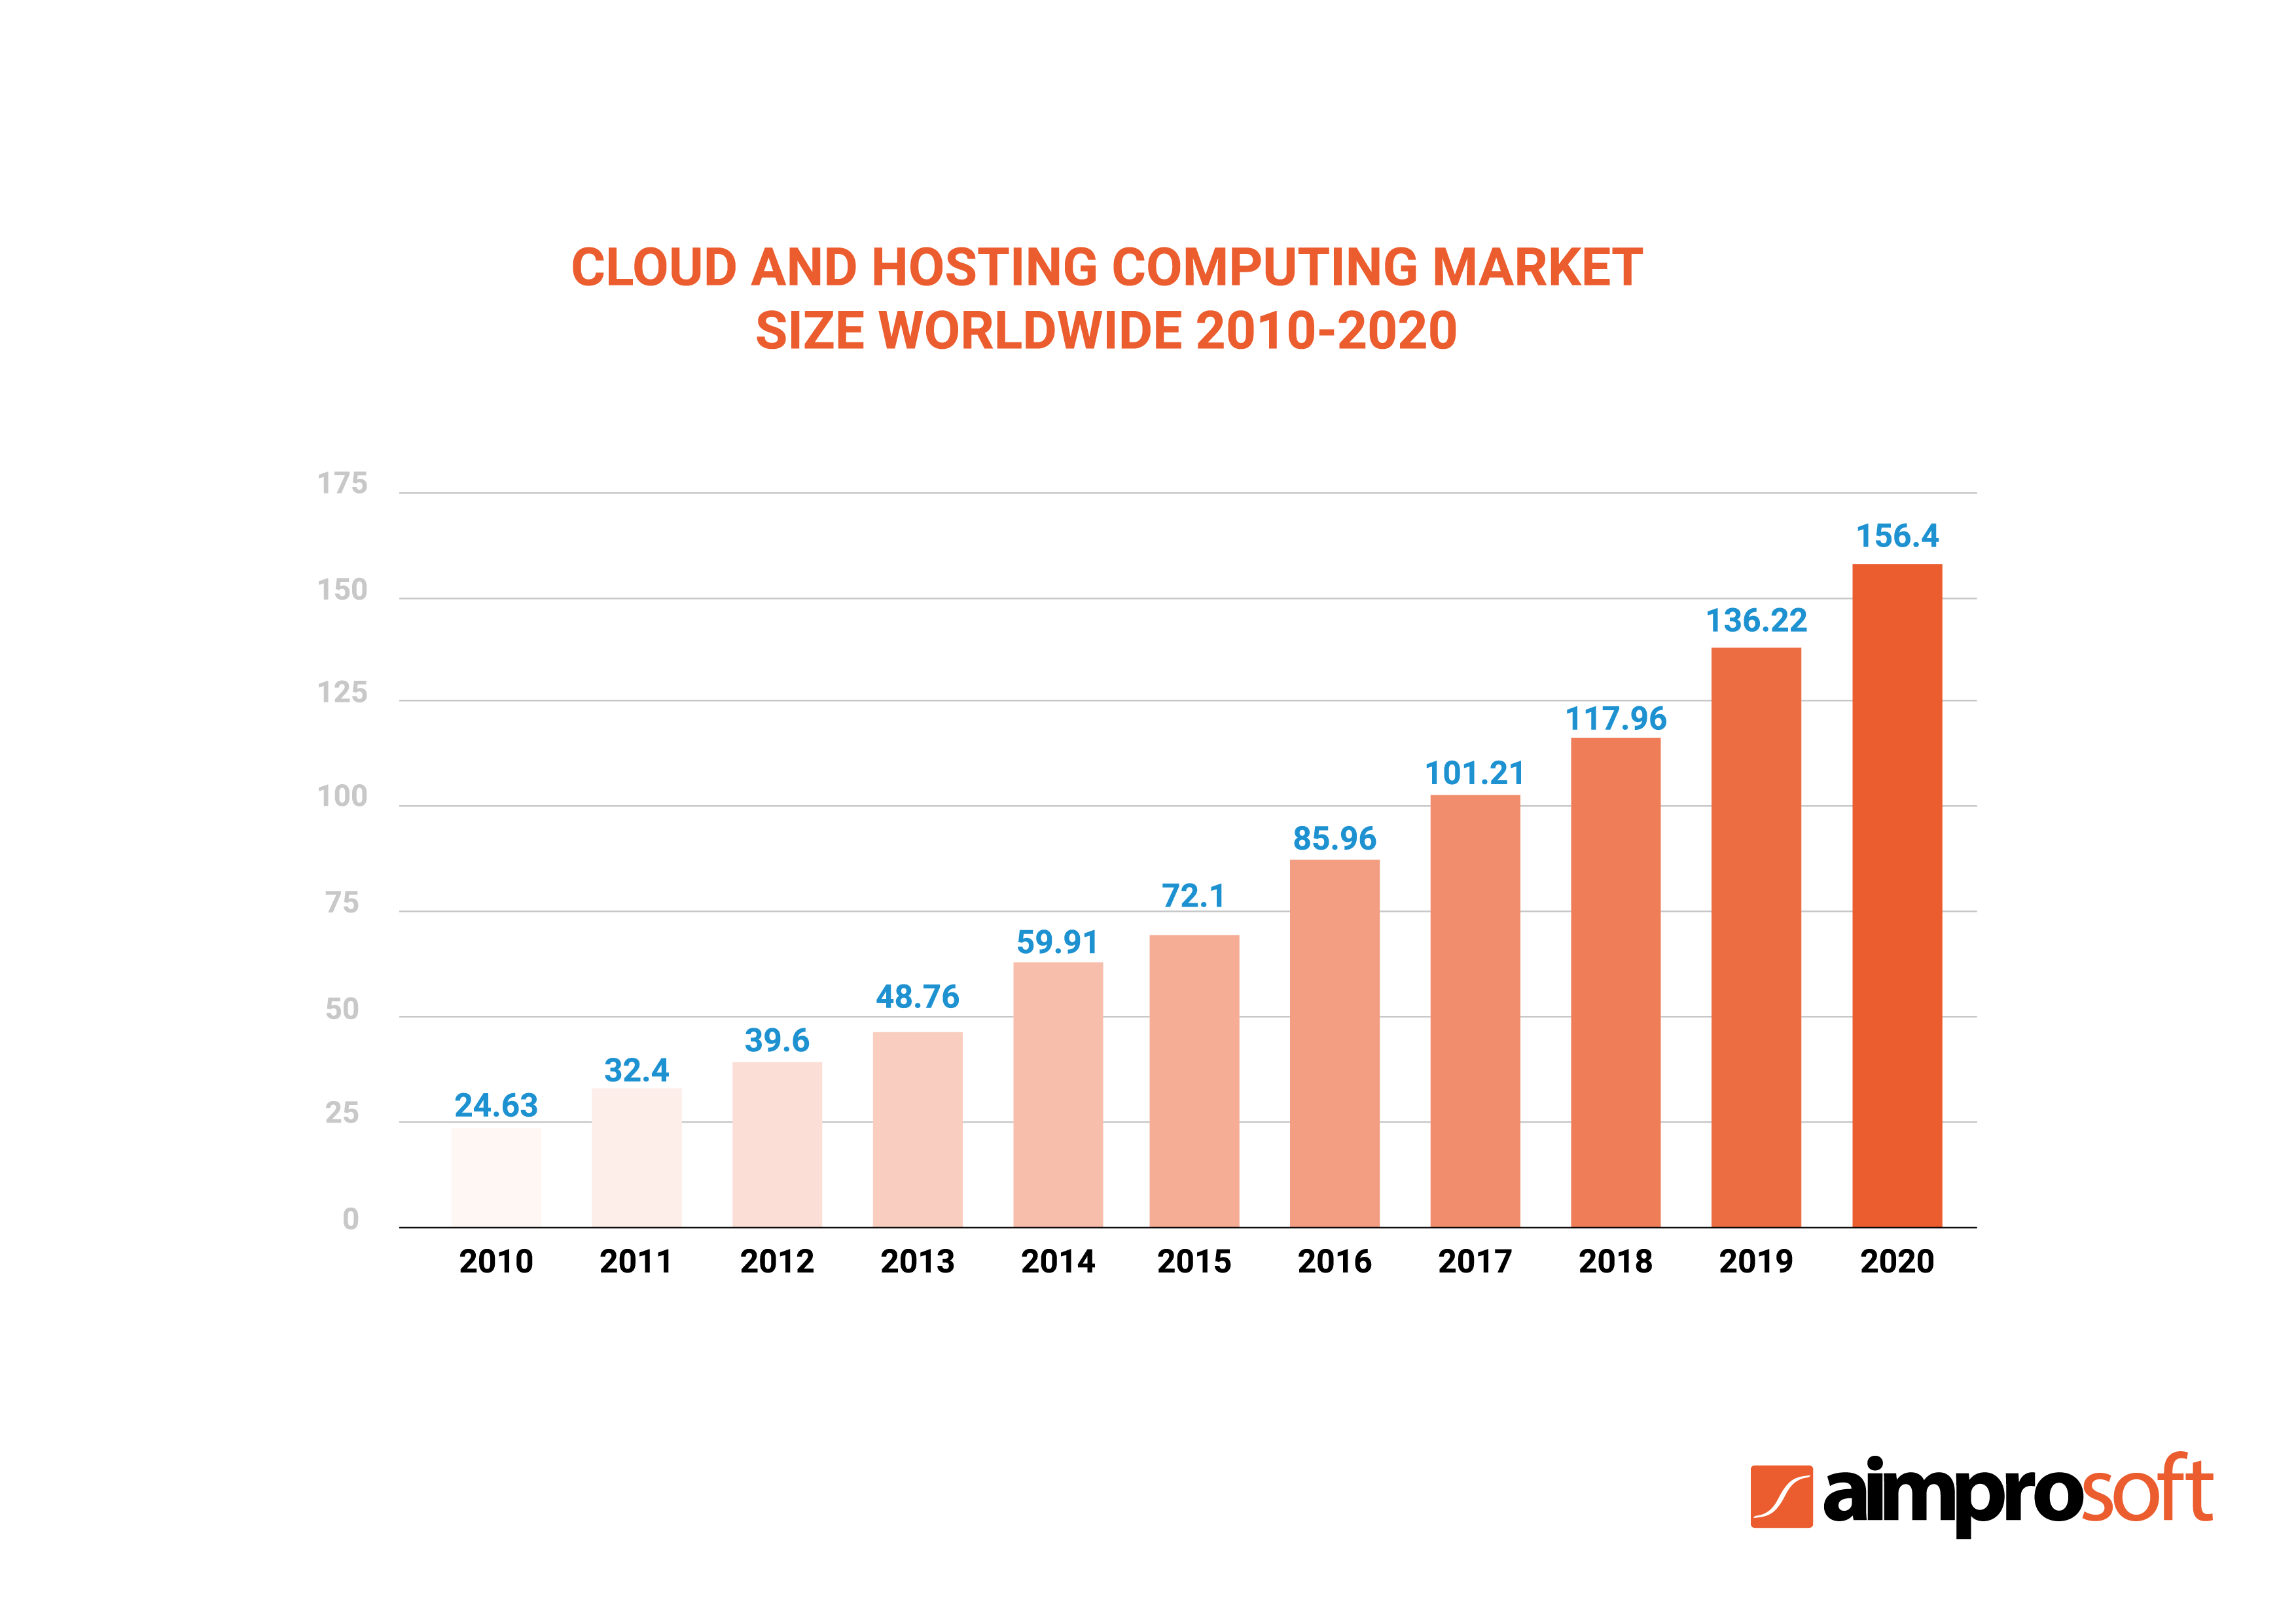 Hosting and cloud computing market size worldwide 2010-2020